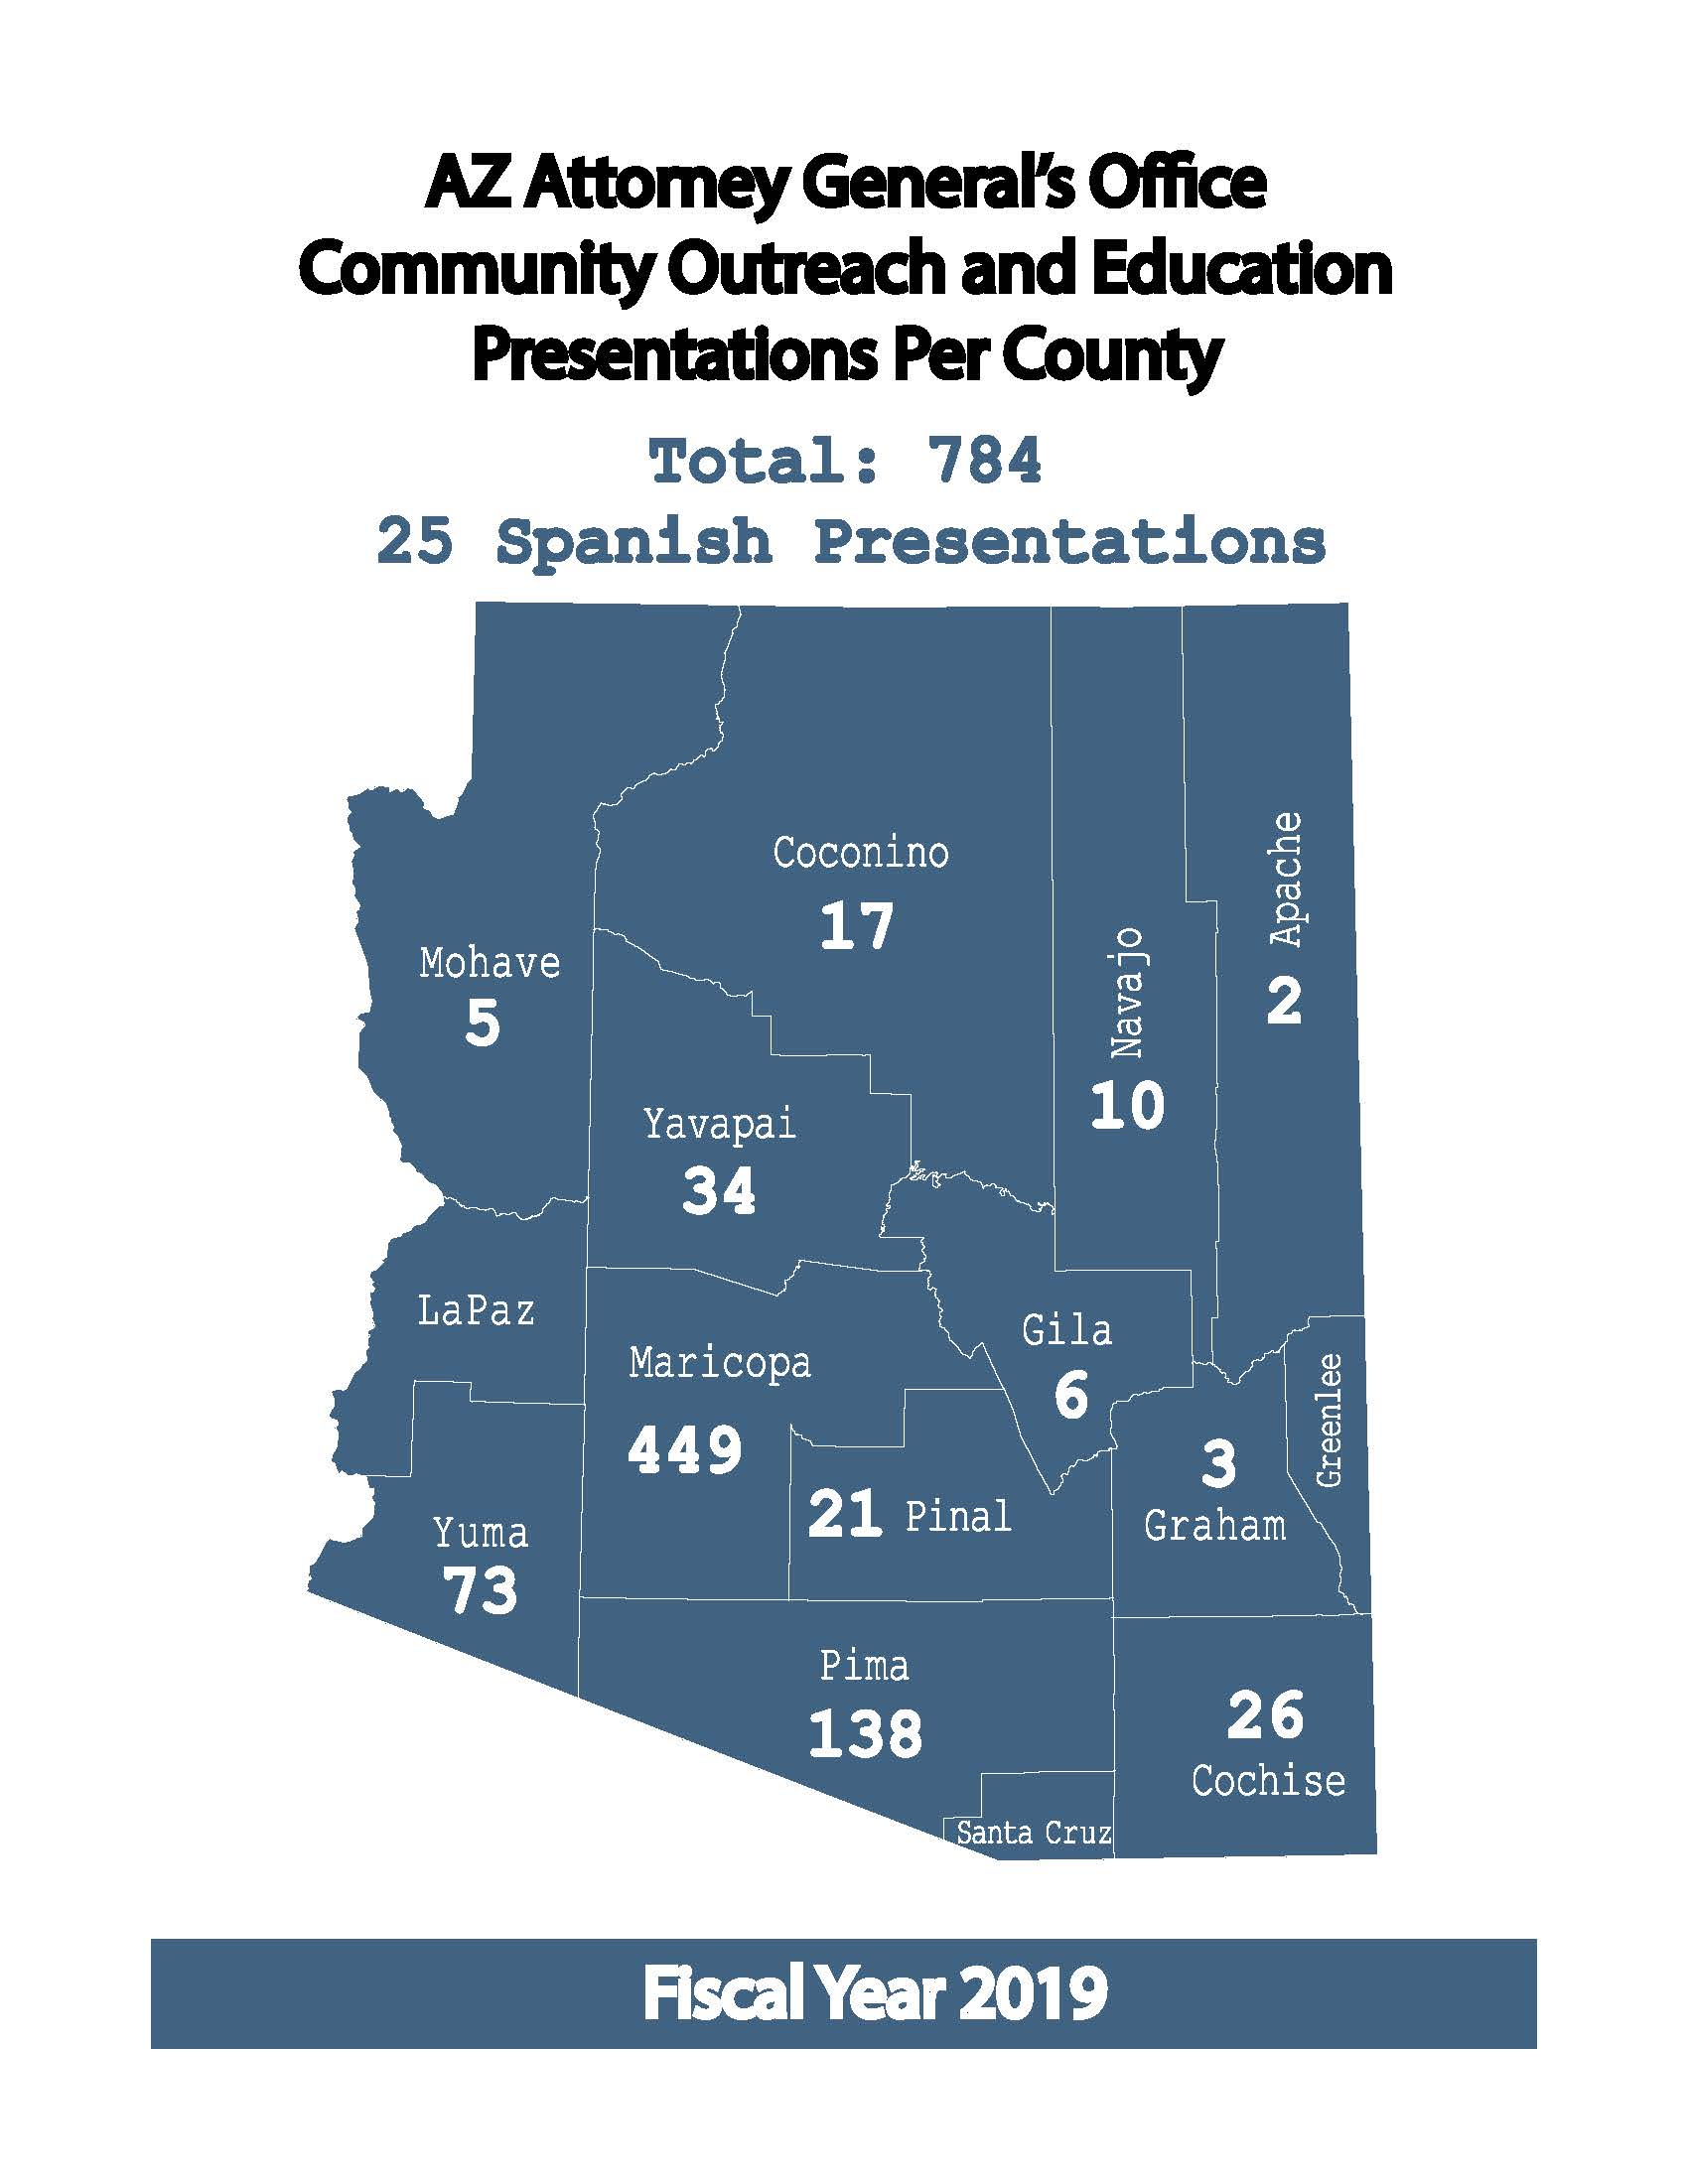 Map of Arizona showing how many presentations there were per county.